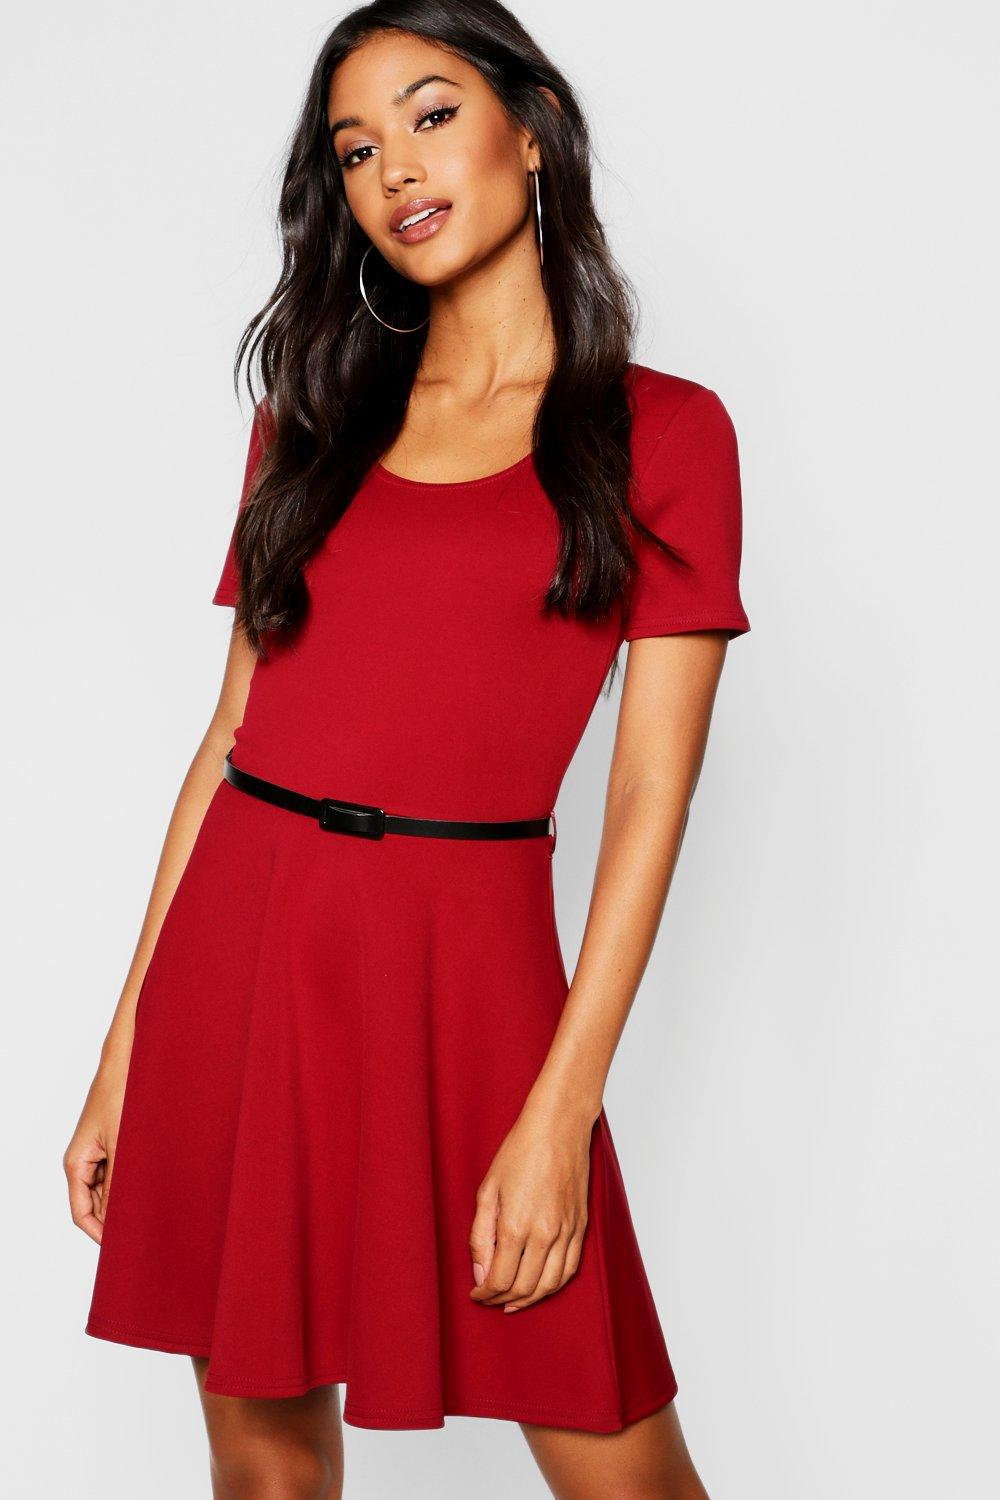 098ff62a88 Boohoo Short Sleeve Belted Skater Dress in Red - Lyst